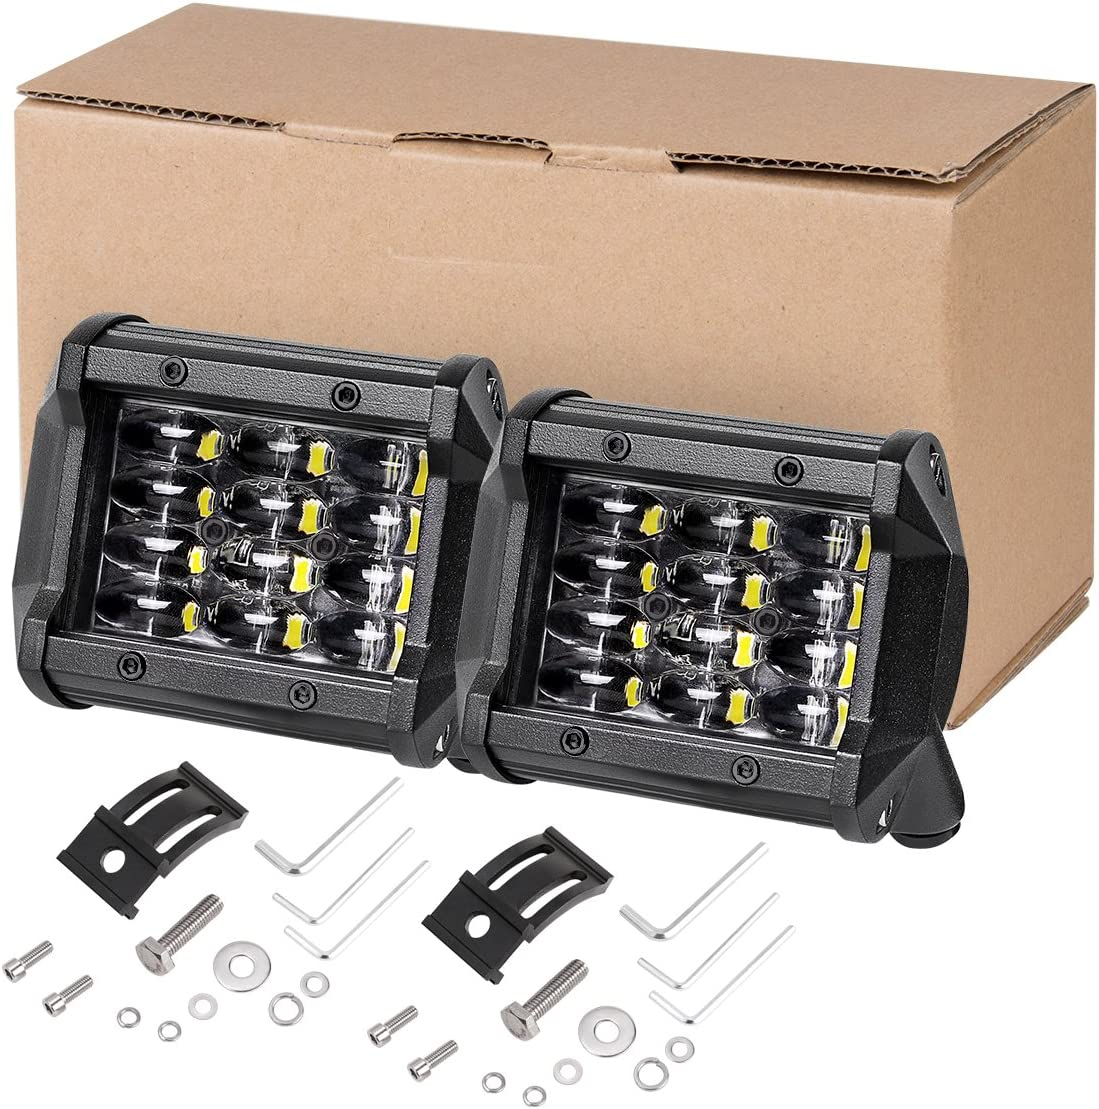 LED Pods Auto Power Plus 2pcs 4 inch 126W Fog Lights Off Road Driving Lights Waterproof Cree LED Cubes Square Work Lights for Truck Tractor Jeep ATV Fork Lift Boat Lights